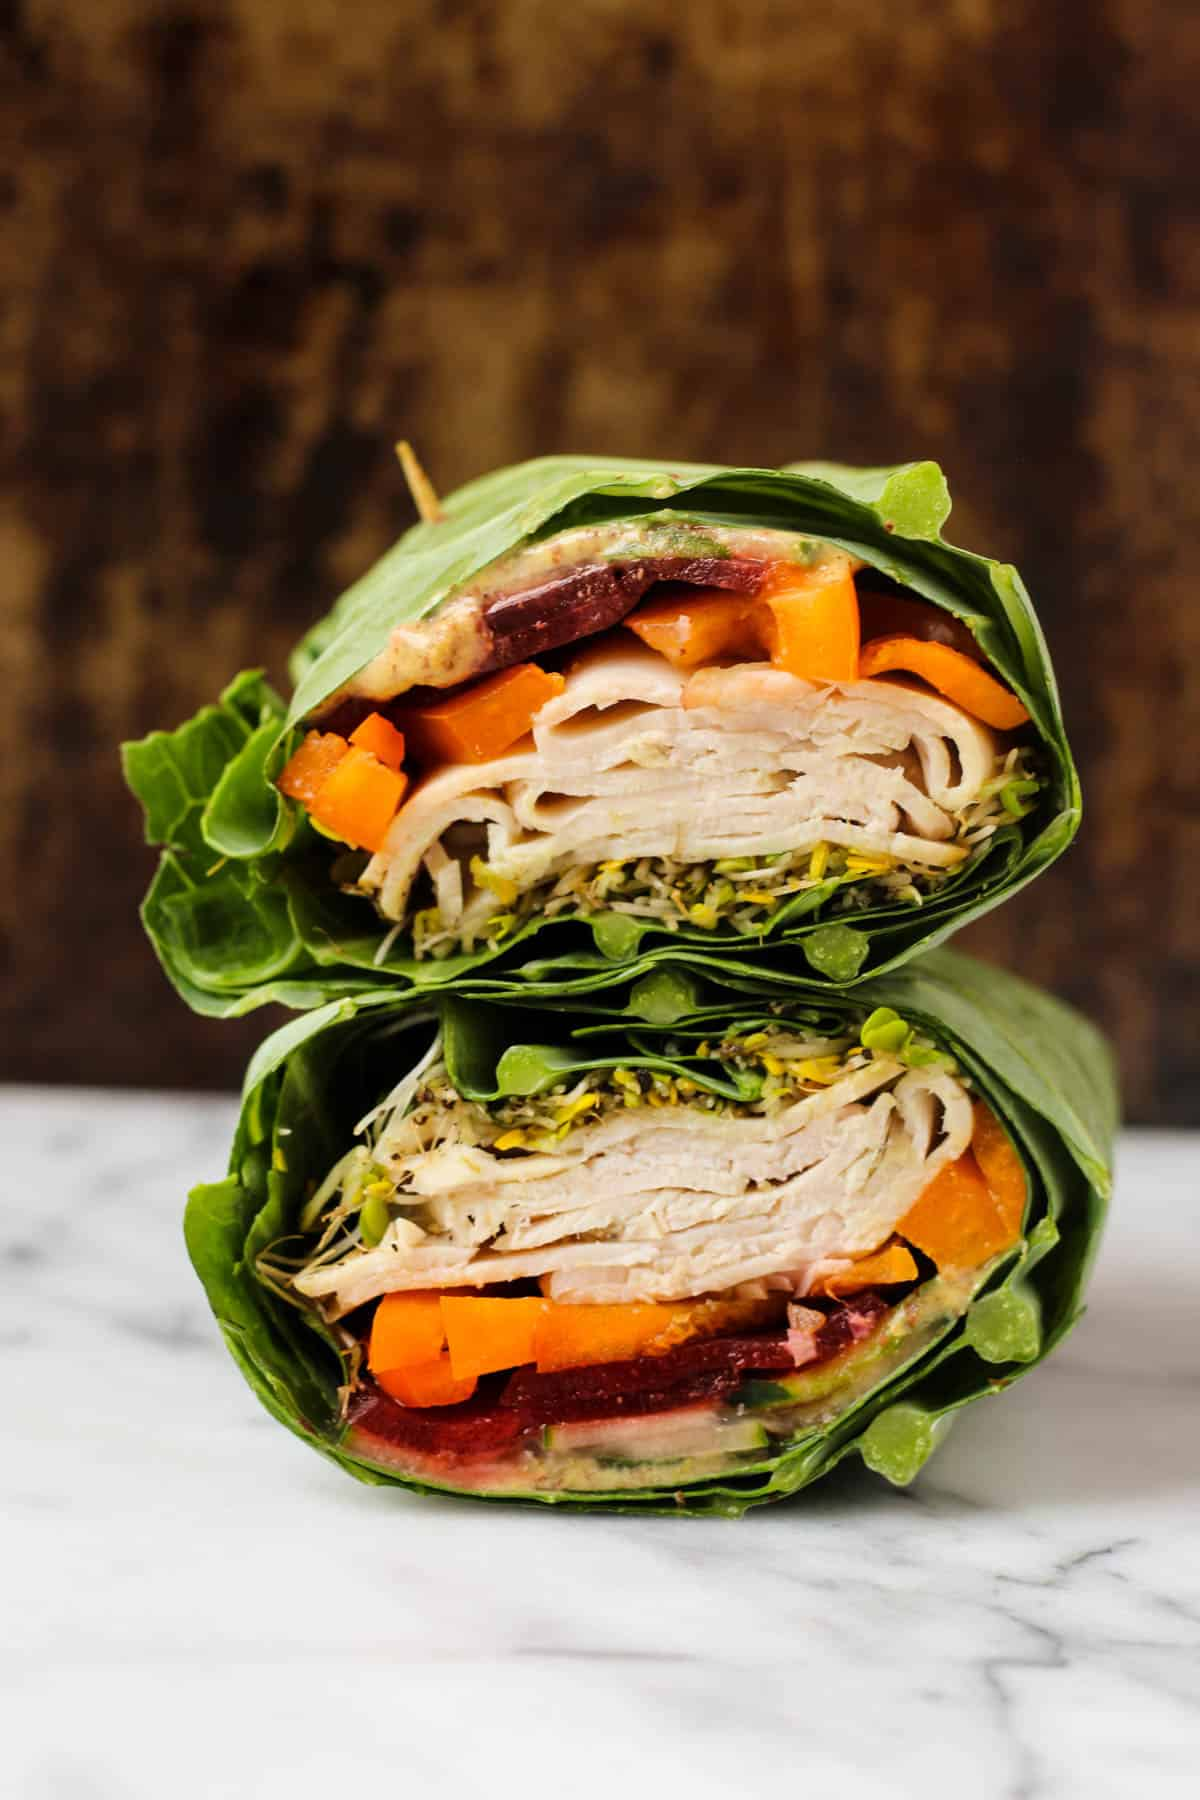 Use collard greens as a low carb and nutrient packed wrap! These Turkey Collard Wraps are customizable to your liking and paleo and Whole30 approved! - Eat the Gains